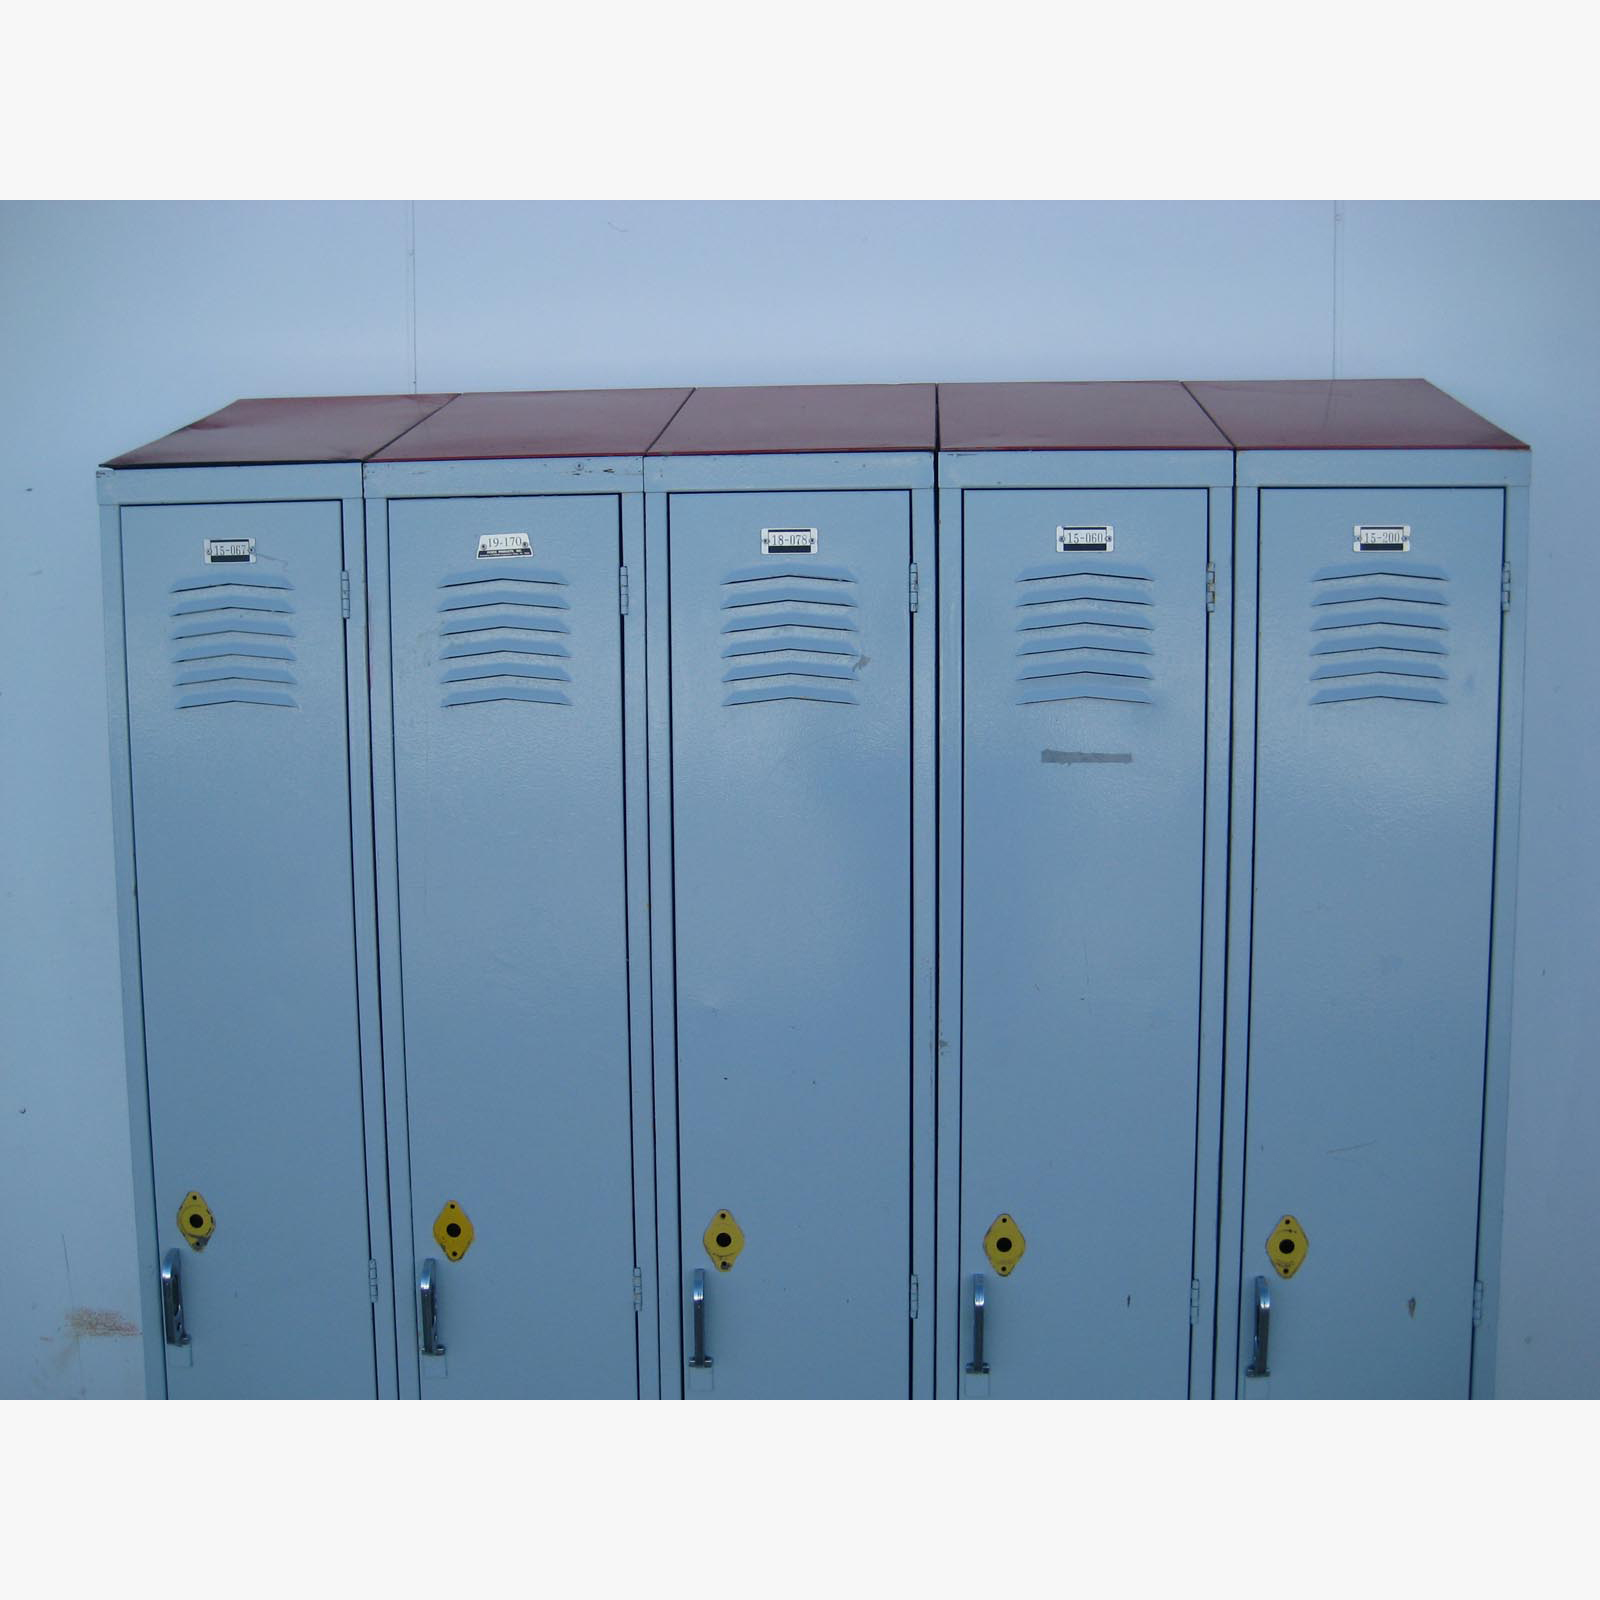 Used Lockers with Sloped Topsimage 3 image 3